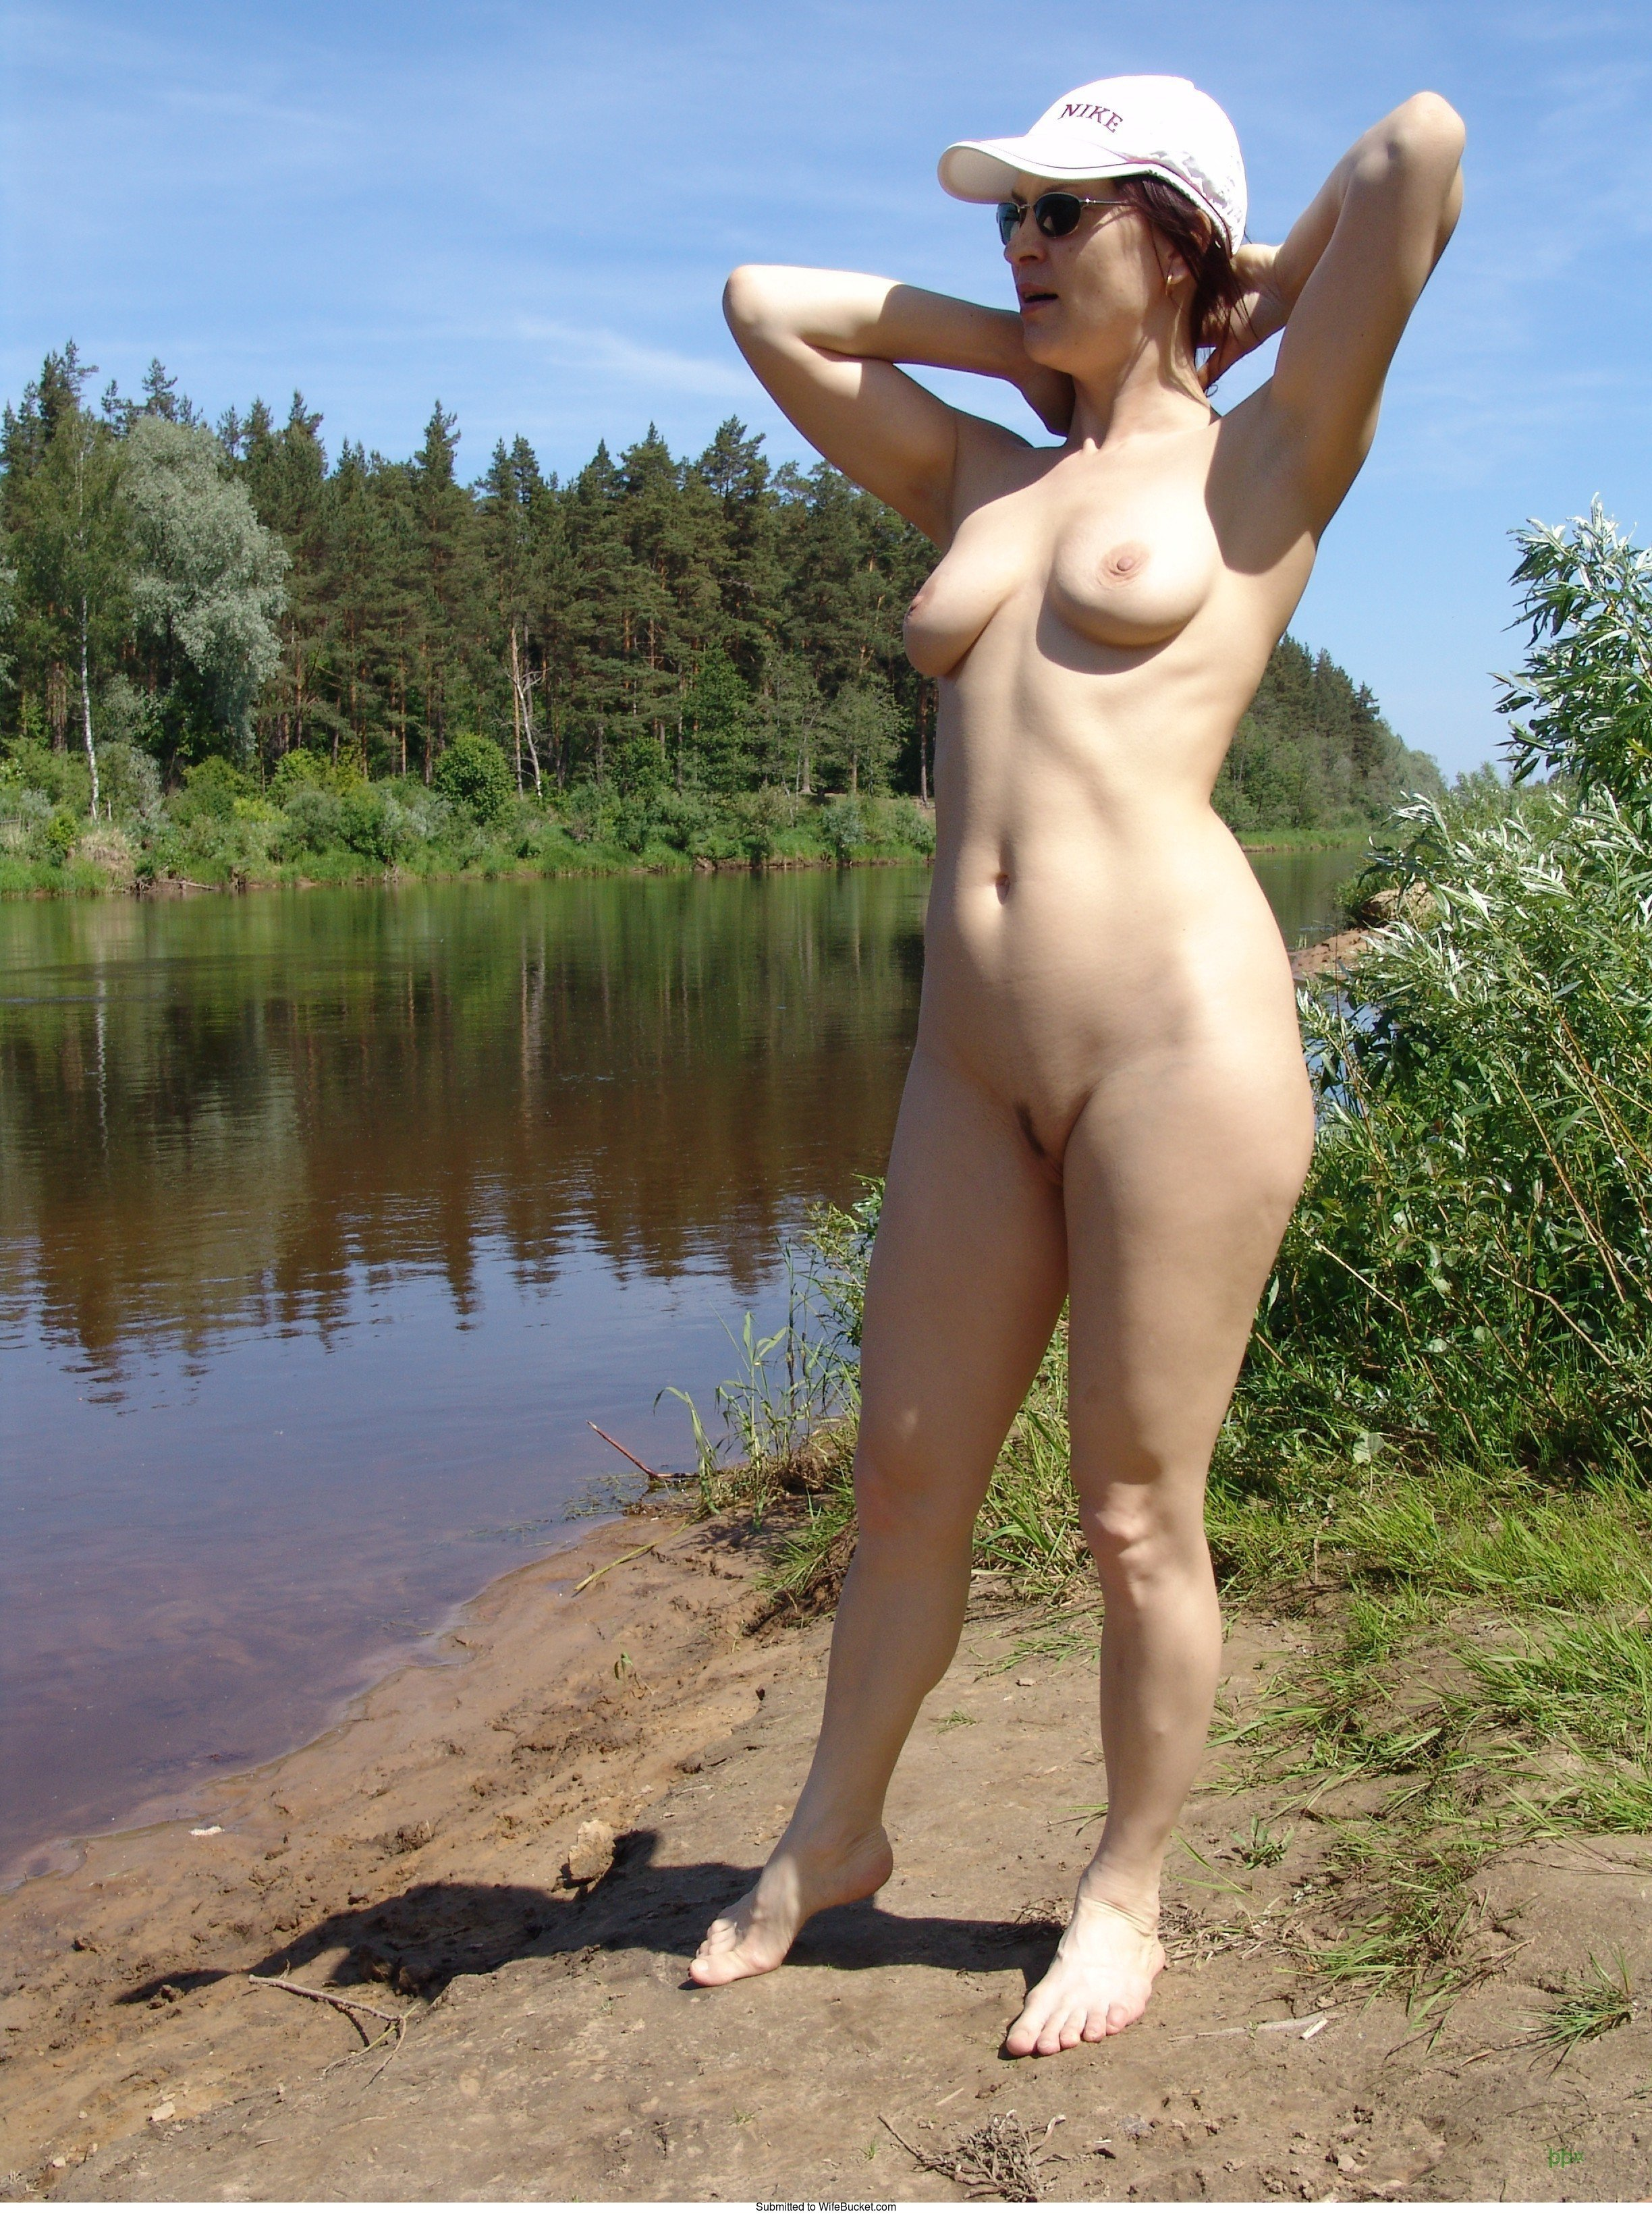 Pics Of Wifey Naked Outdoor-7852